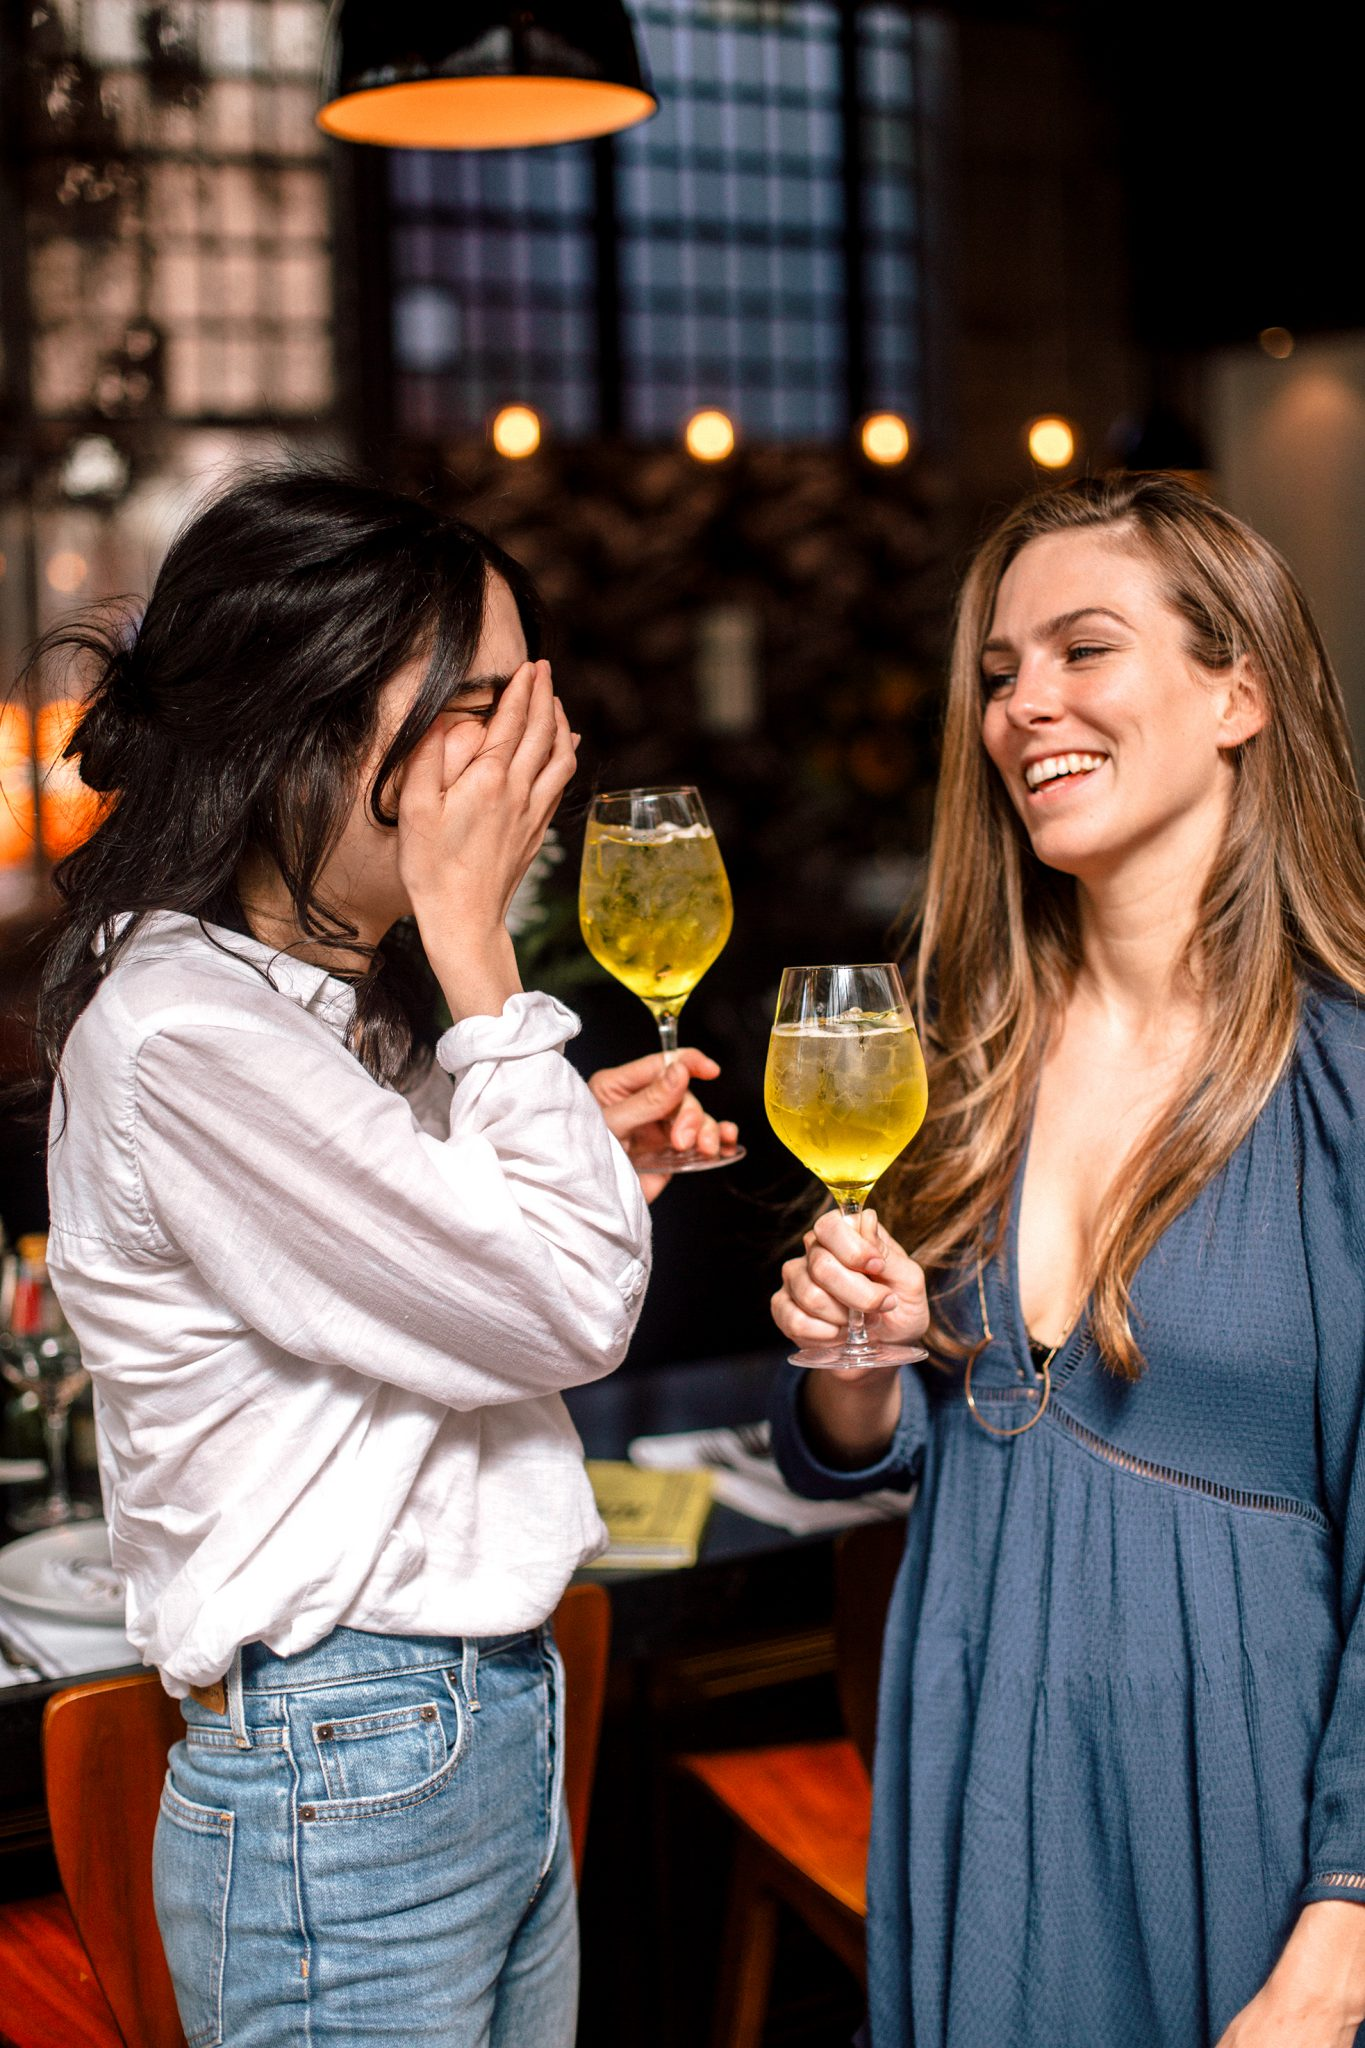 St-Germain 'How to Spritz French Fluently' new book launch